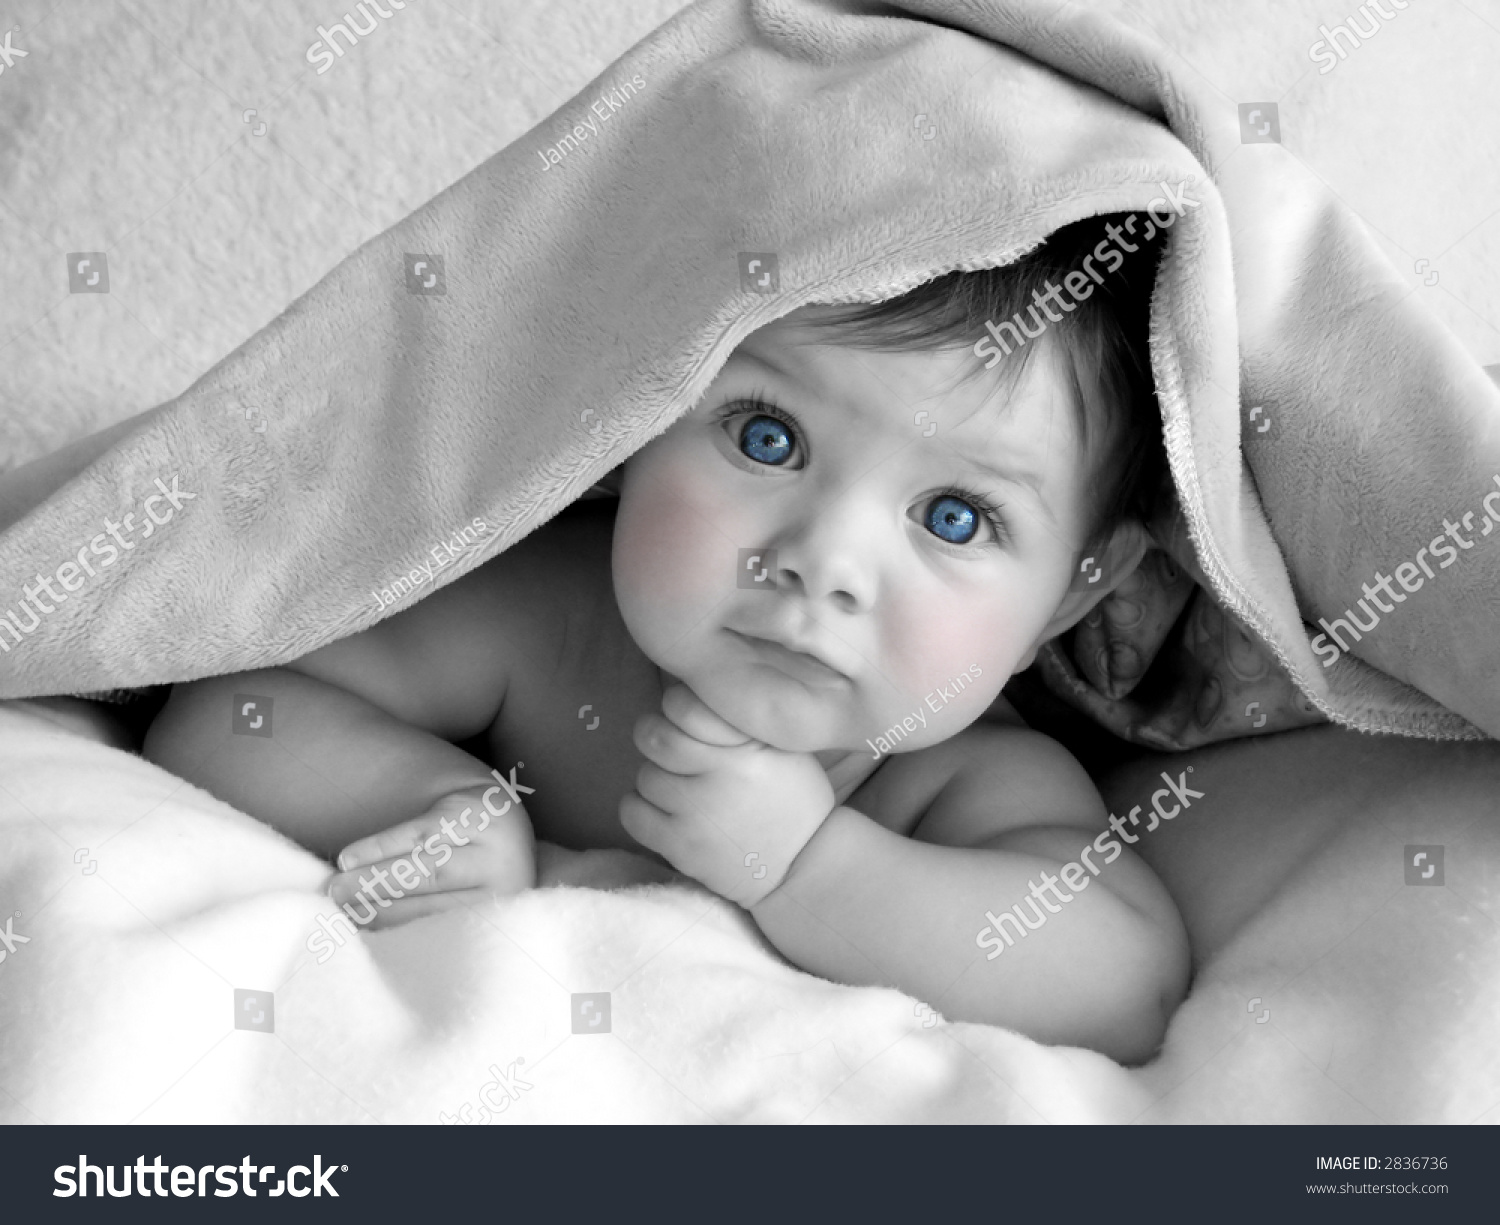 Beautiful baby in black and white with blue eyes and pink cheeks